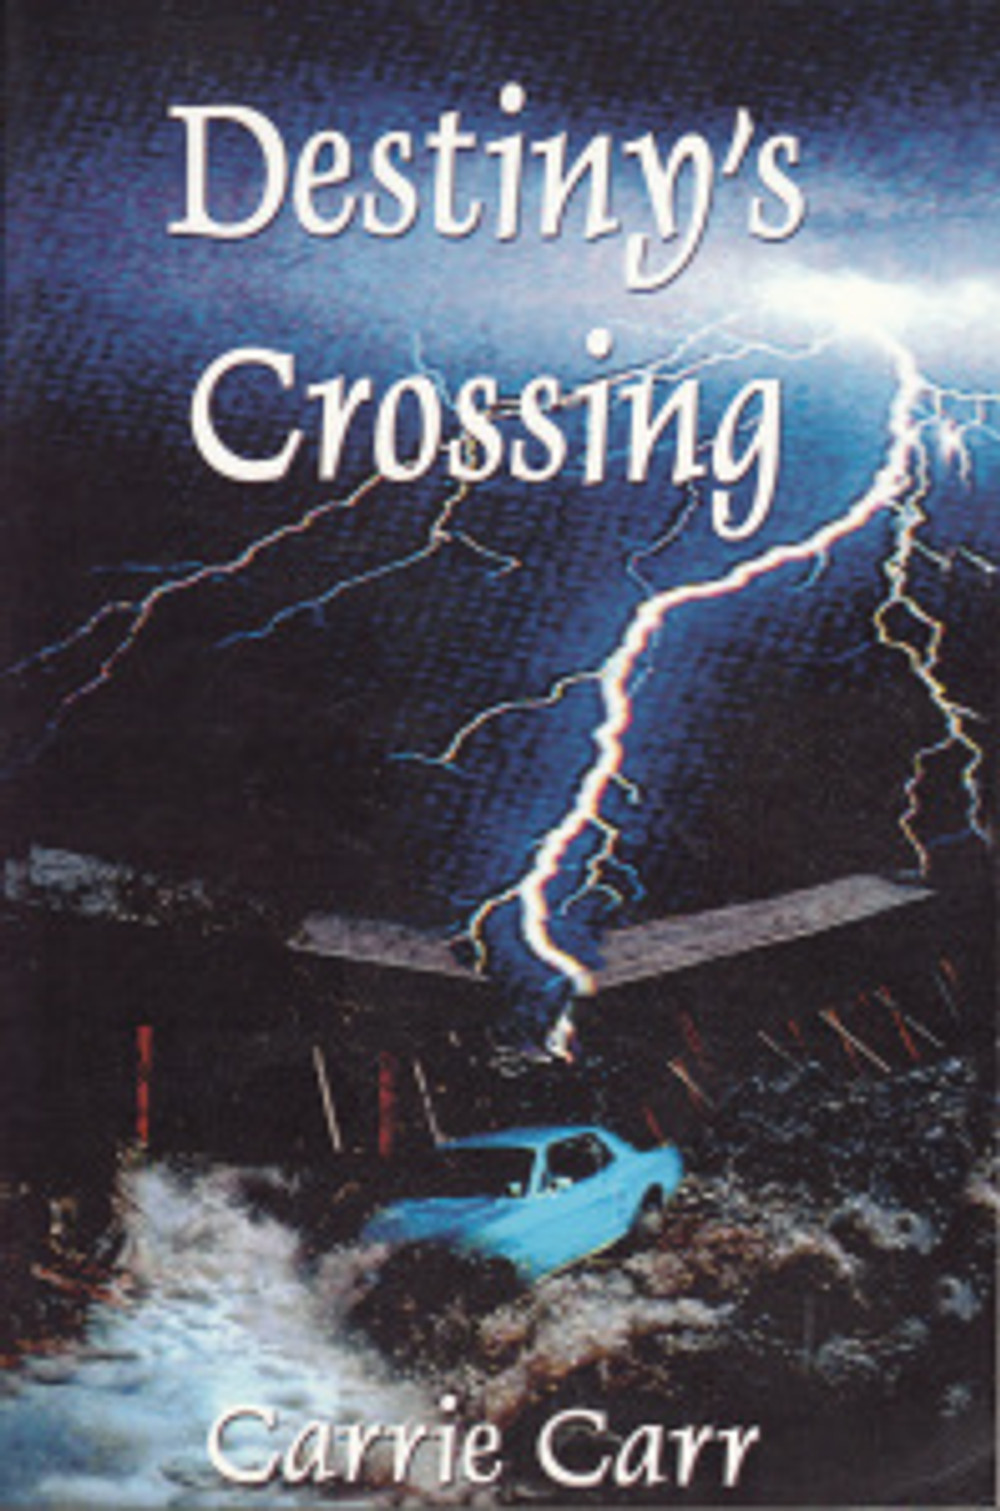 reprint of Destiny's Crossing